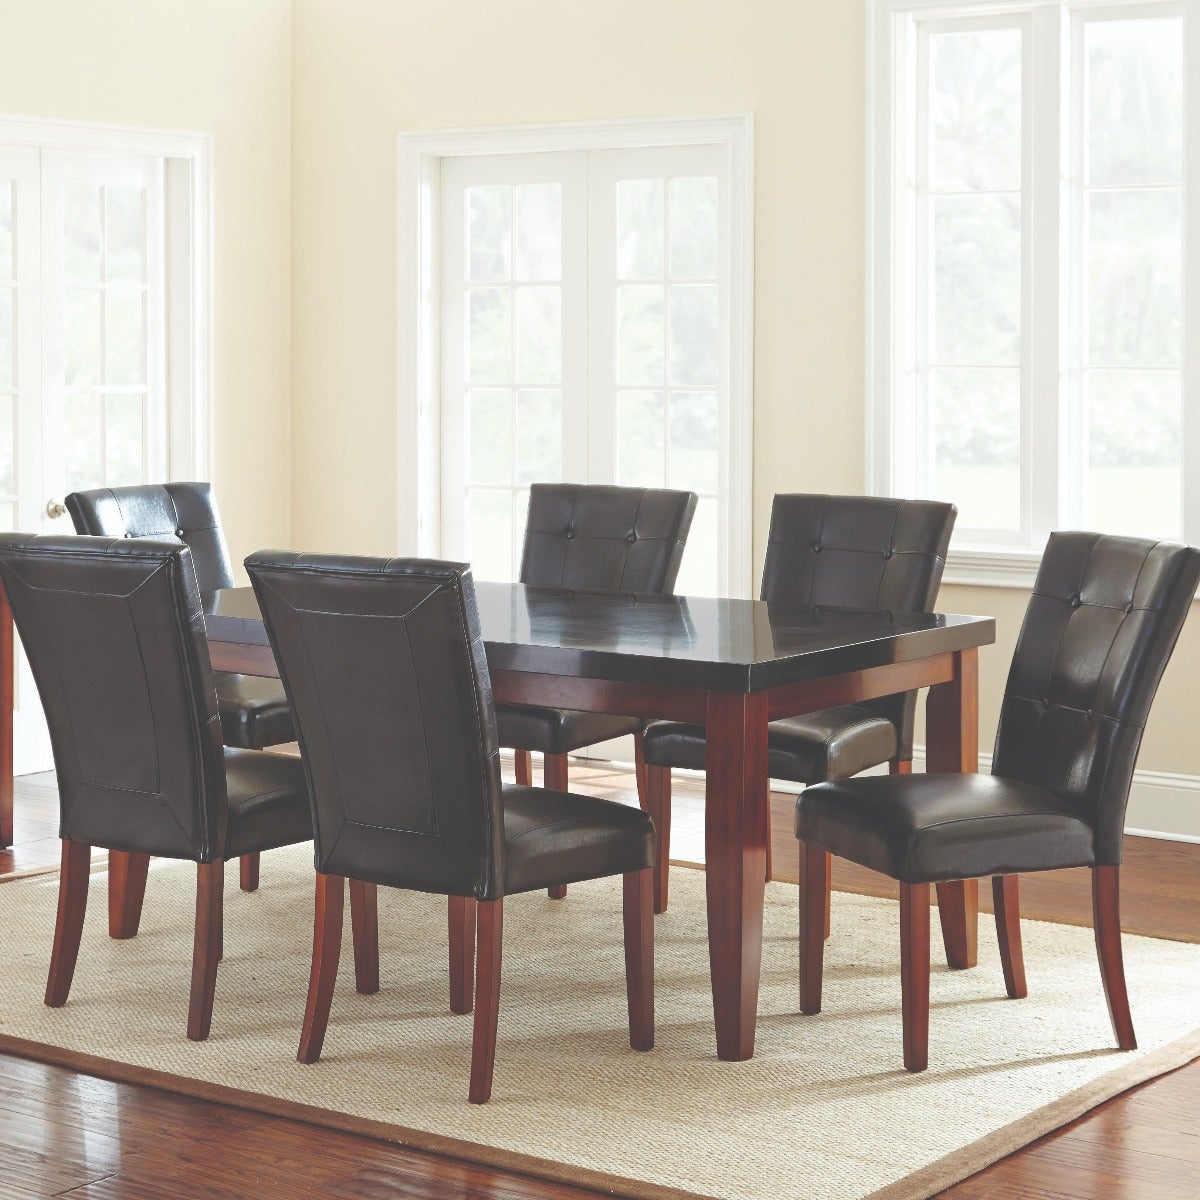 Bello 7 Pc Granite Dining Set | Weekends Only Furniture & Mattress